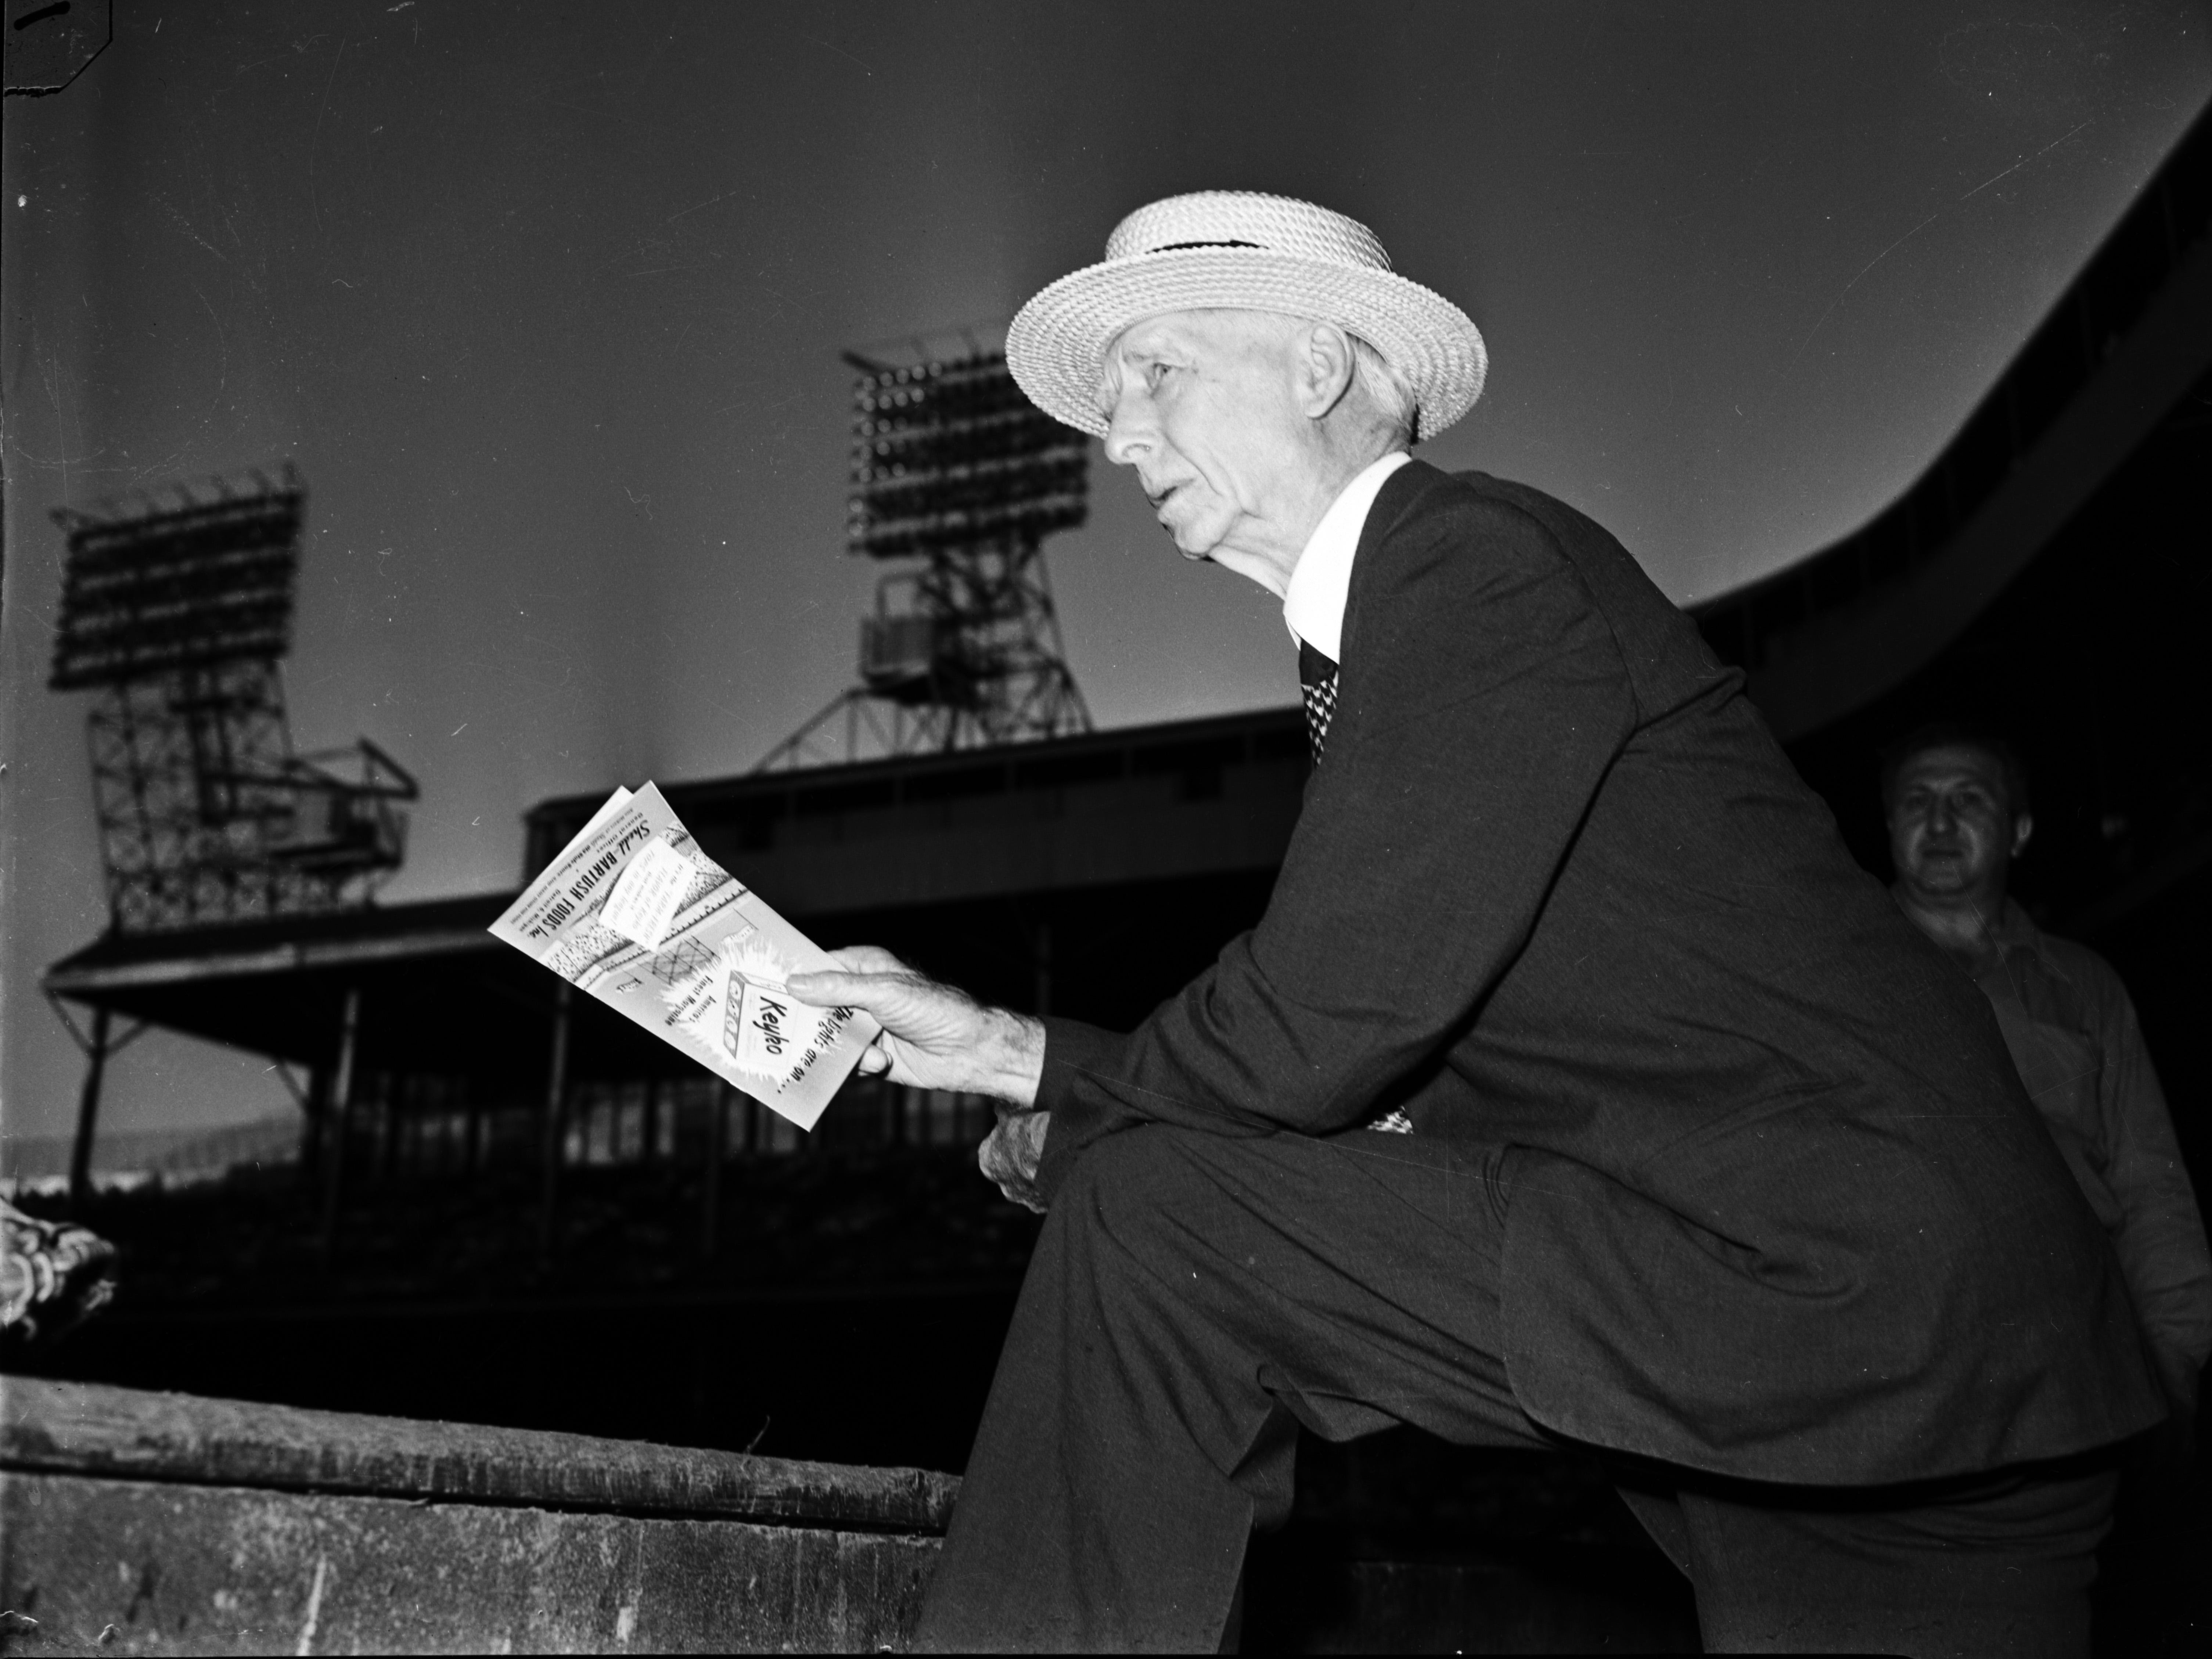 Connie Mack, manager of the Philadelphia Athletics, looks out from the dugout at Briggs Stadium.  In 1944, Mack was in year 43 of managing the A's. He would retire at age 87 after the 1950 season.